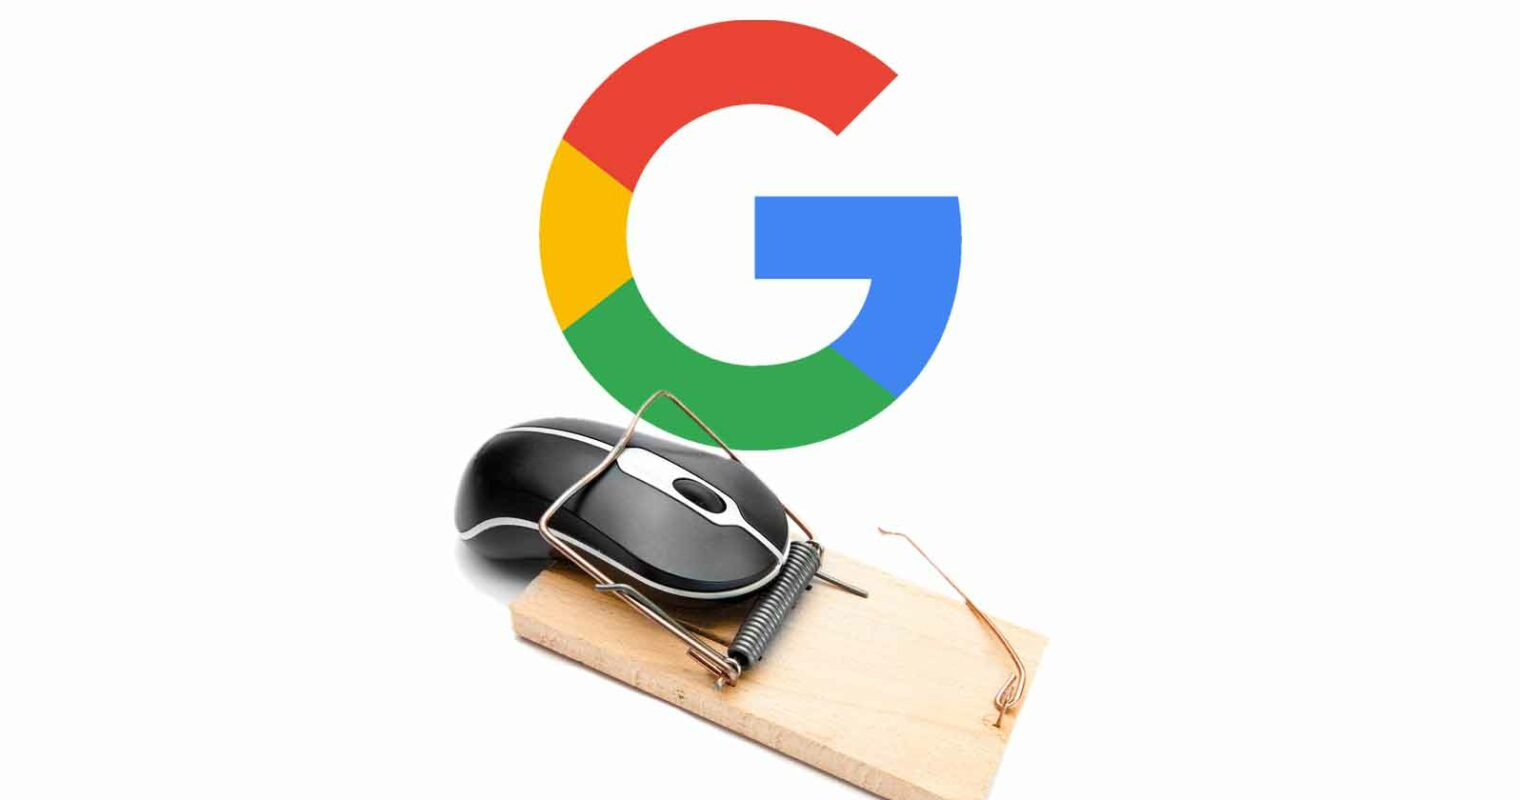 Google Warns Against Using Web Stories Teasers